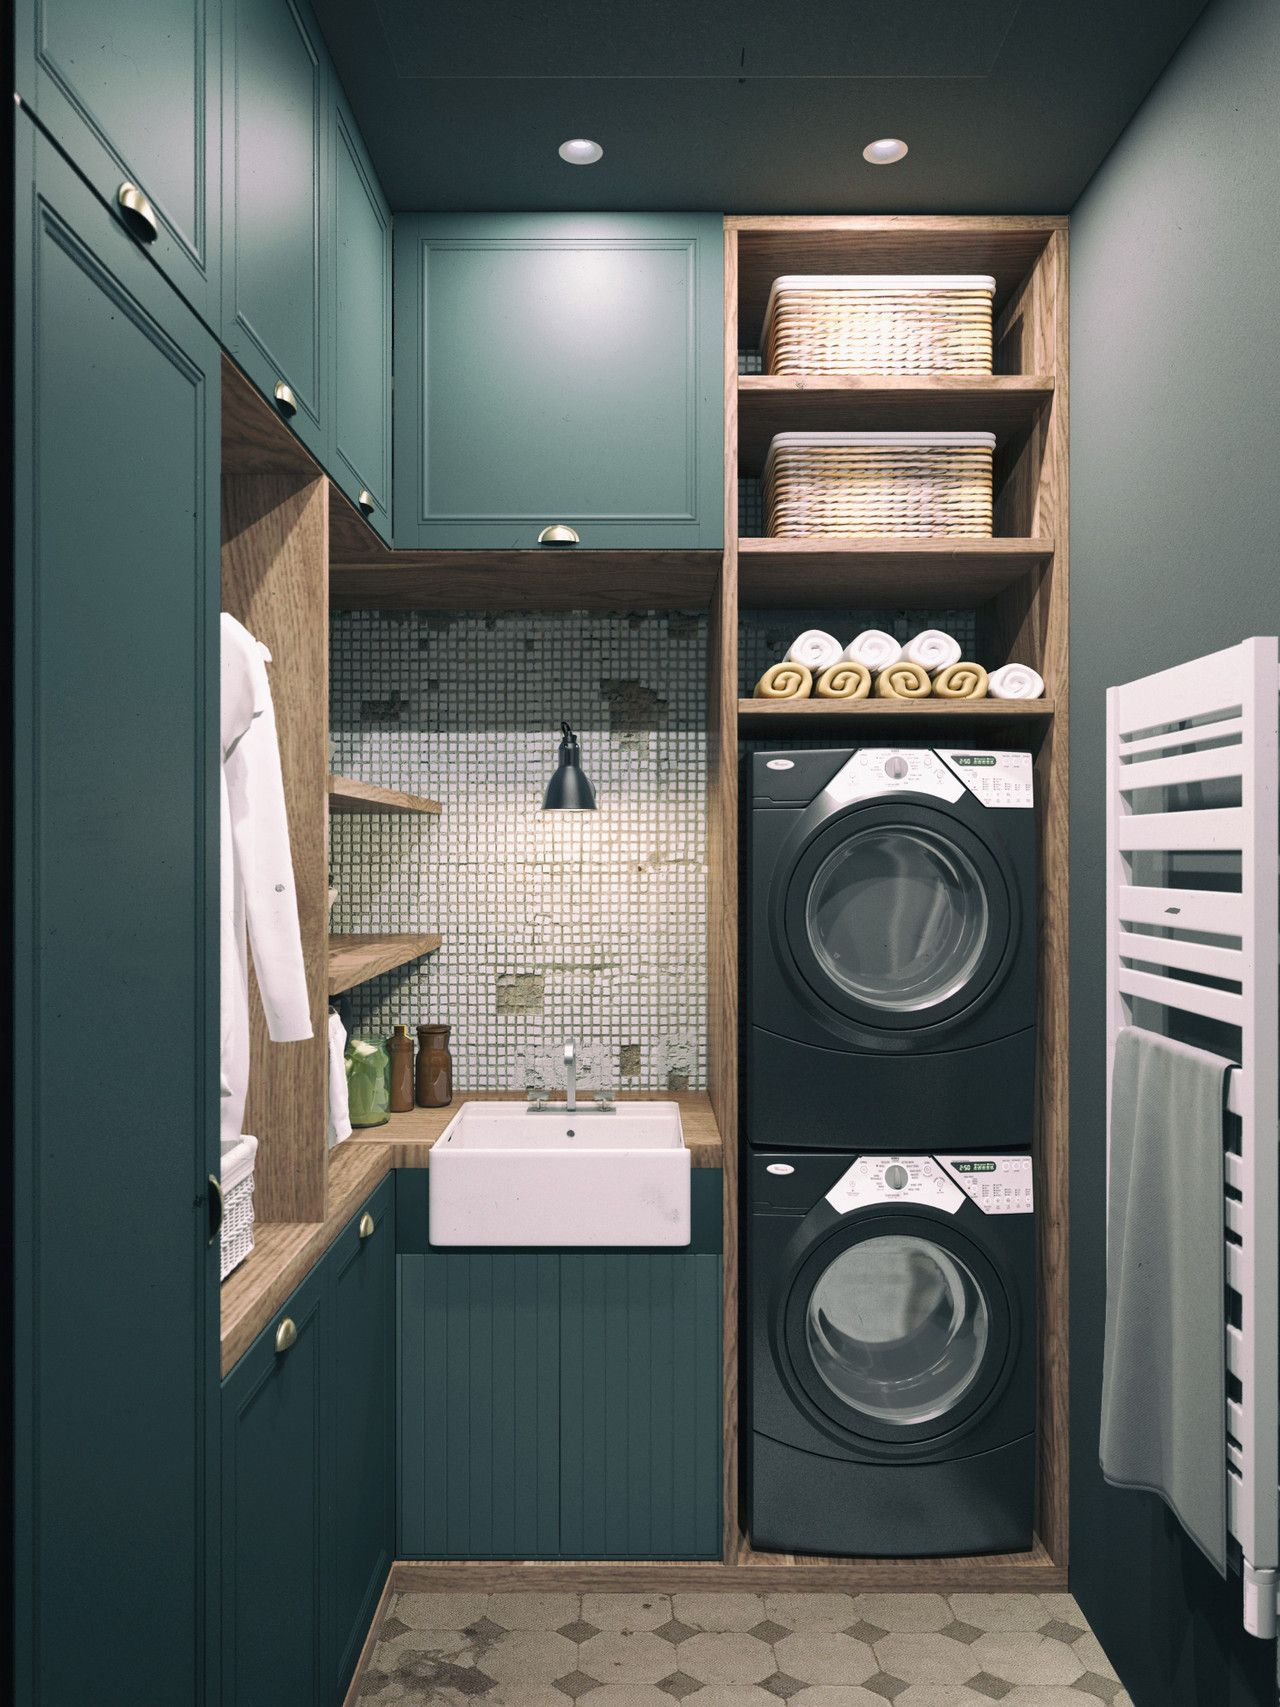 The Best Laundry Room Decorating Ideas - Domino